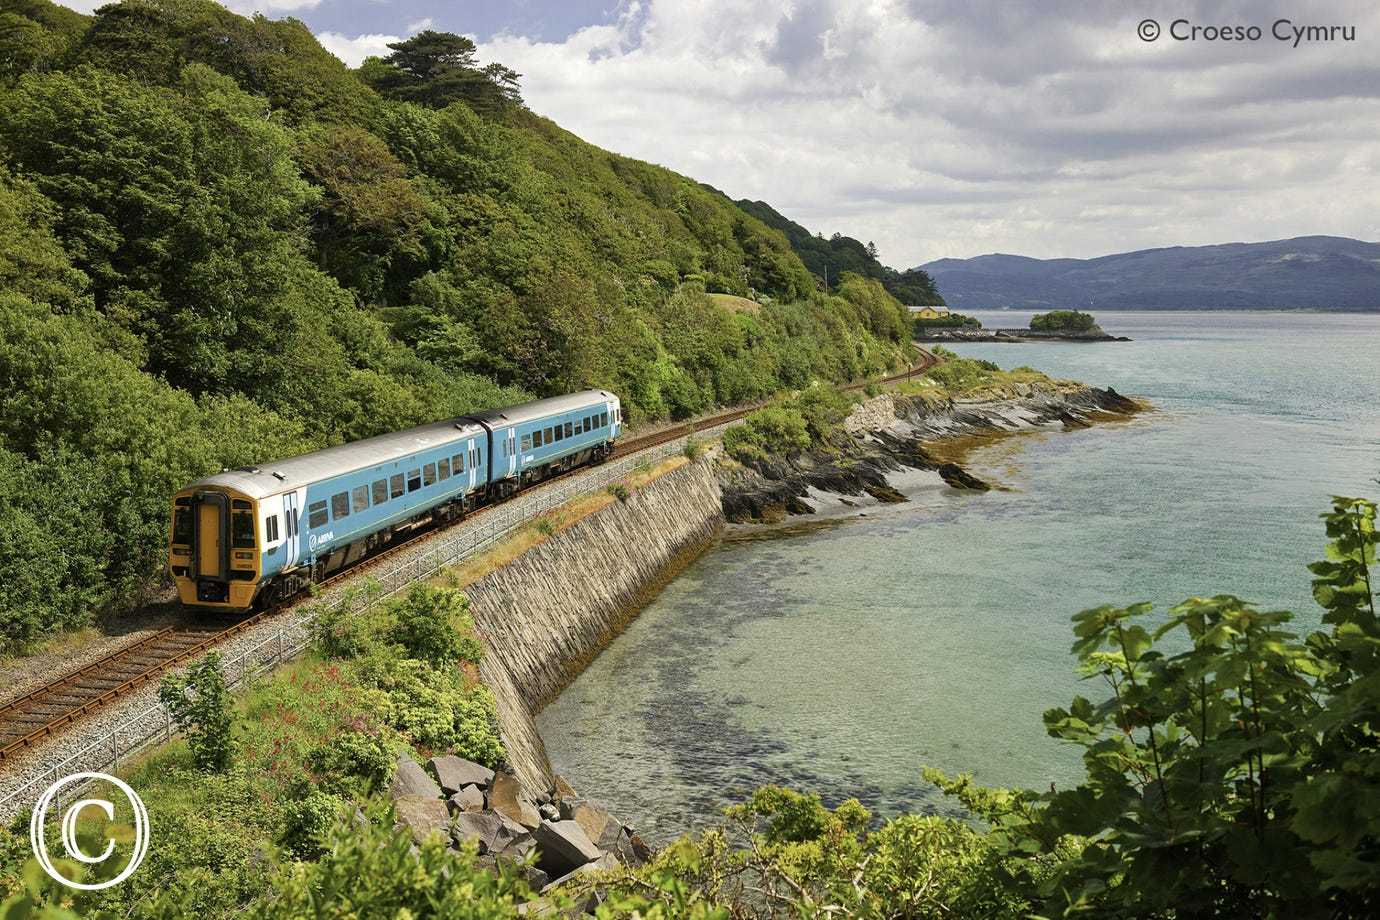 Catch the train from Machynlleth to Aberdyfi and along the coast to Pwllheli